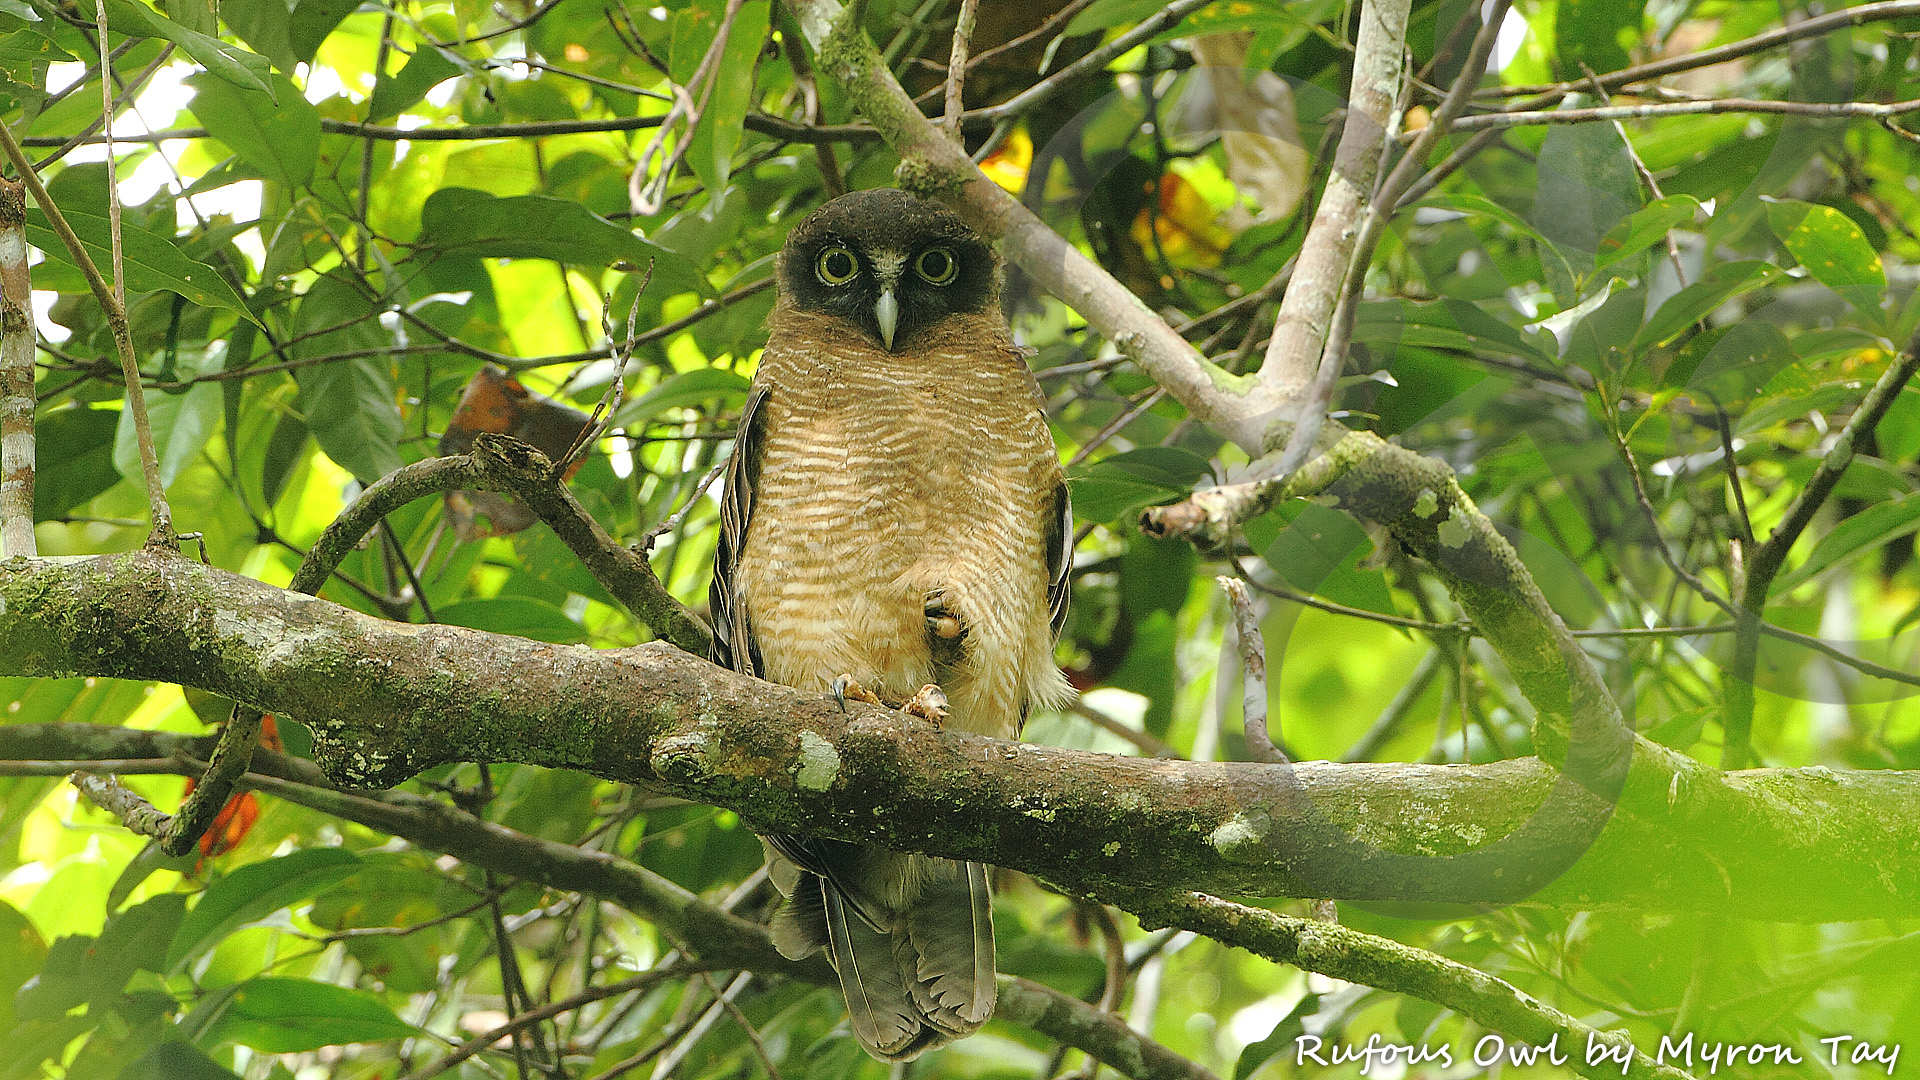 New Guinea's biggest yet most difficult owl to find, the Rufous Owl Ninox rufa, could be one of the highlights around our secluded Muaib jungle camp near Sentani. Copyright © Myron Tay